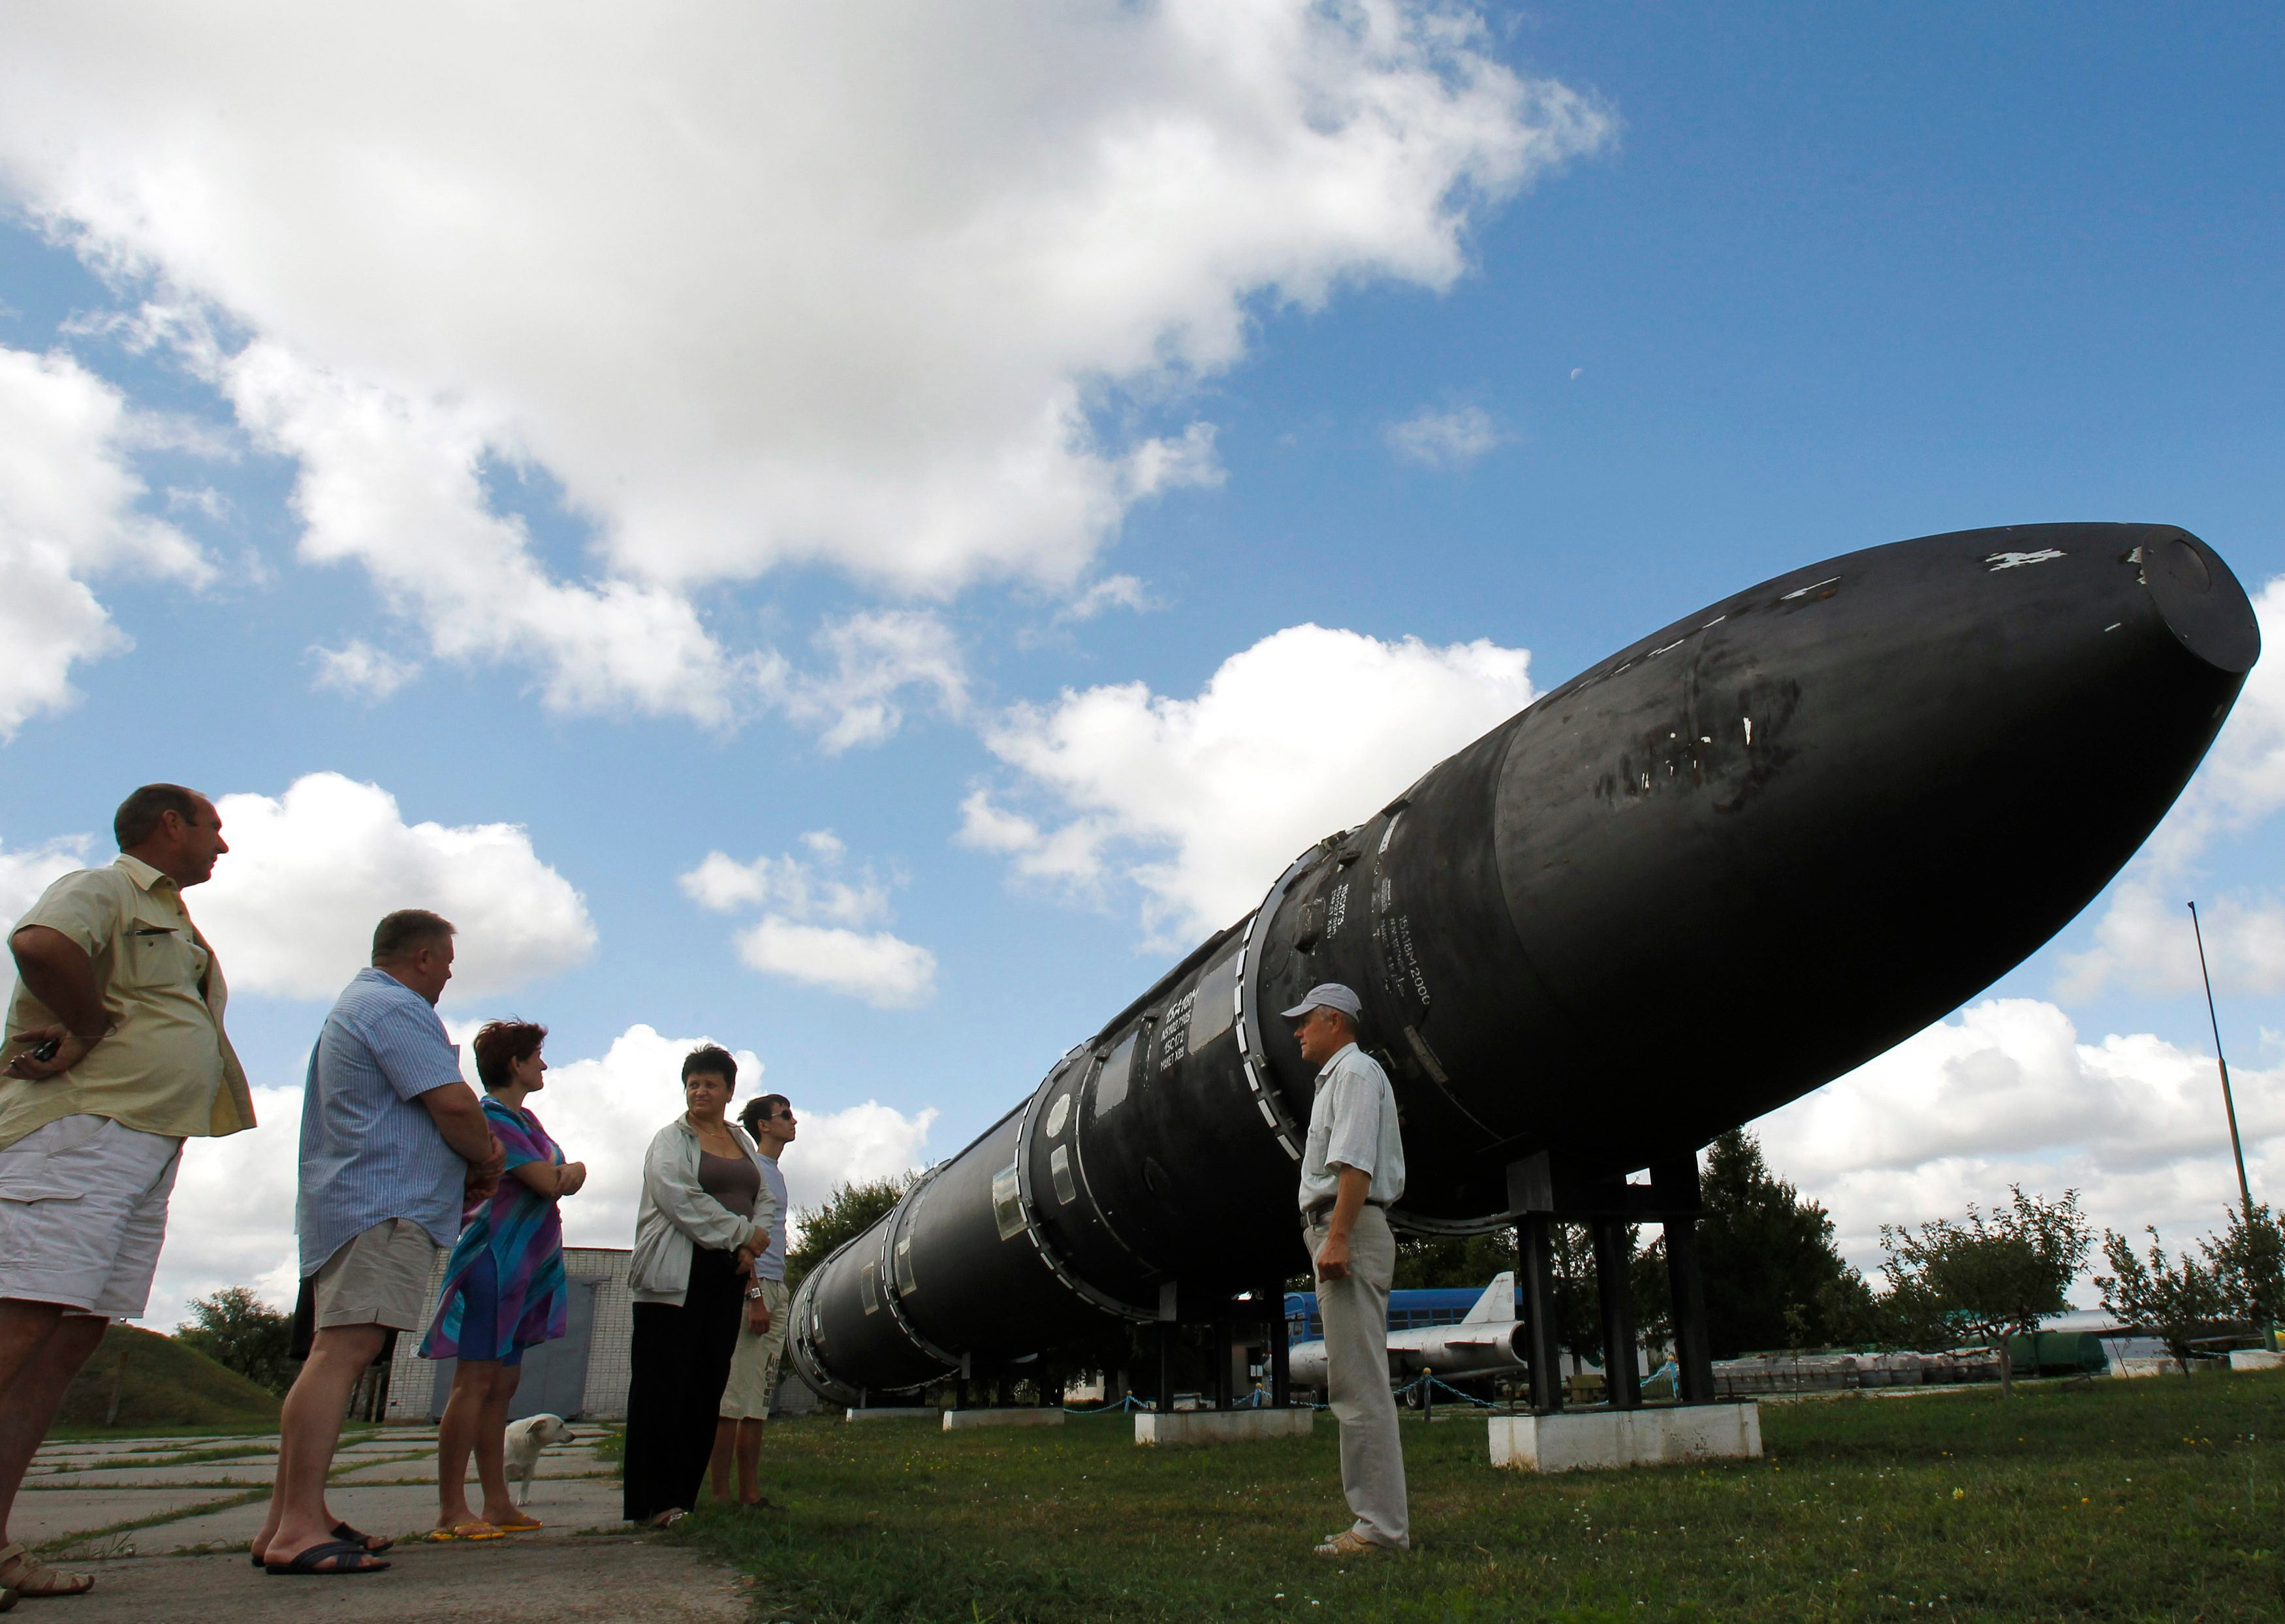 Visitors look at a SS-18 SATAN intercontinental ballistic missile at the Strategic Missile Forces museum near Pervomaysk